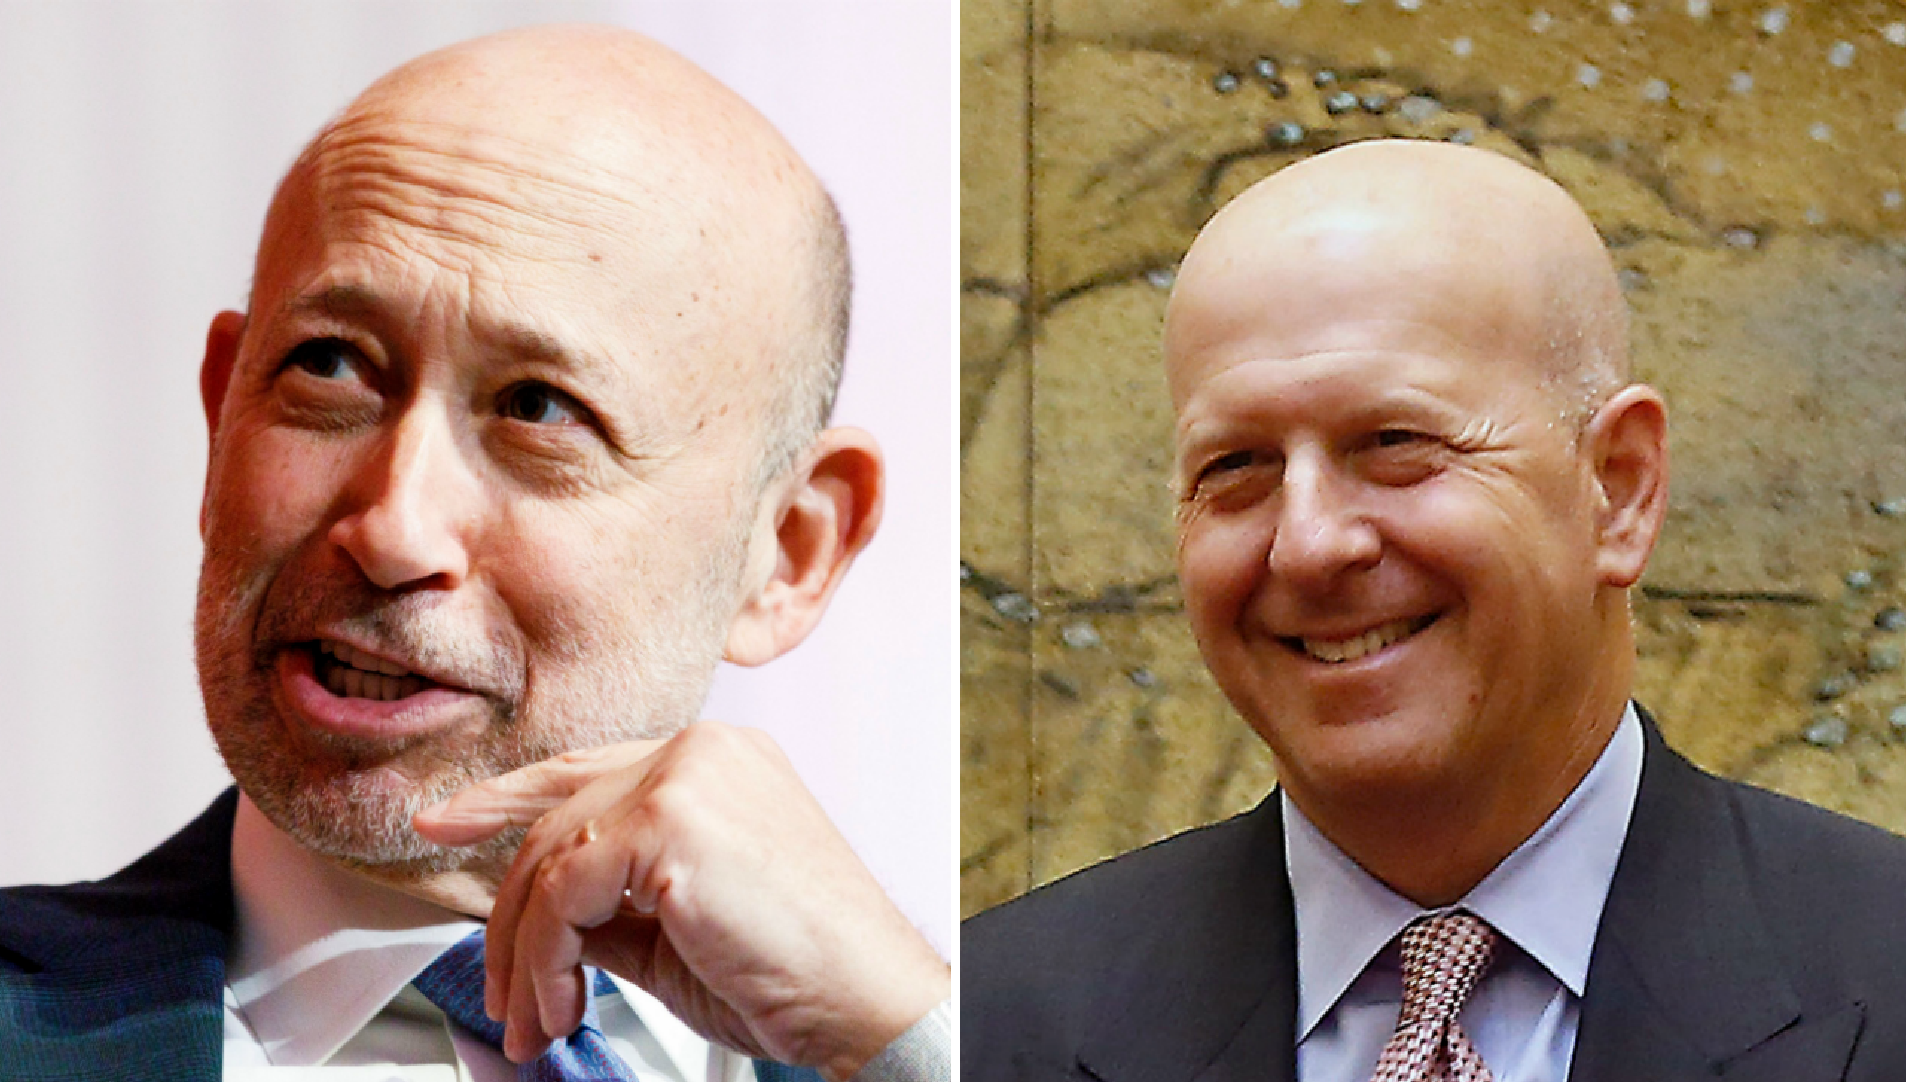 Goldman Sachs: Too much debt and retirees in the world